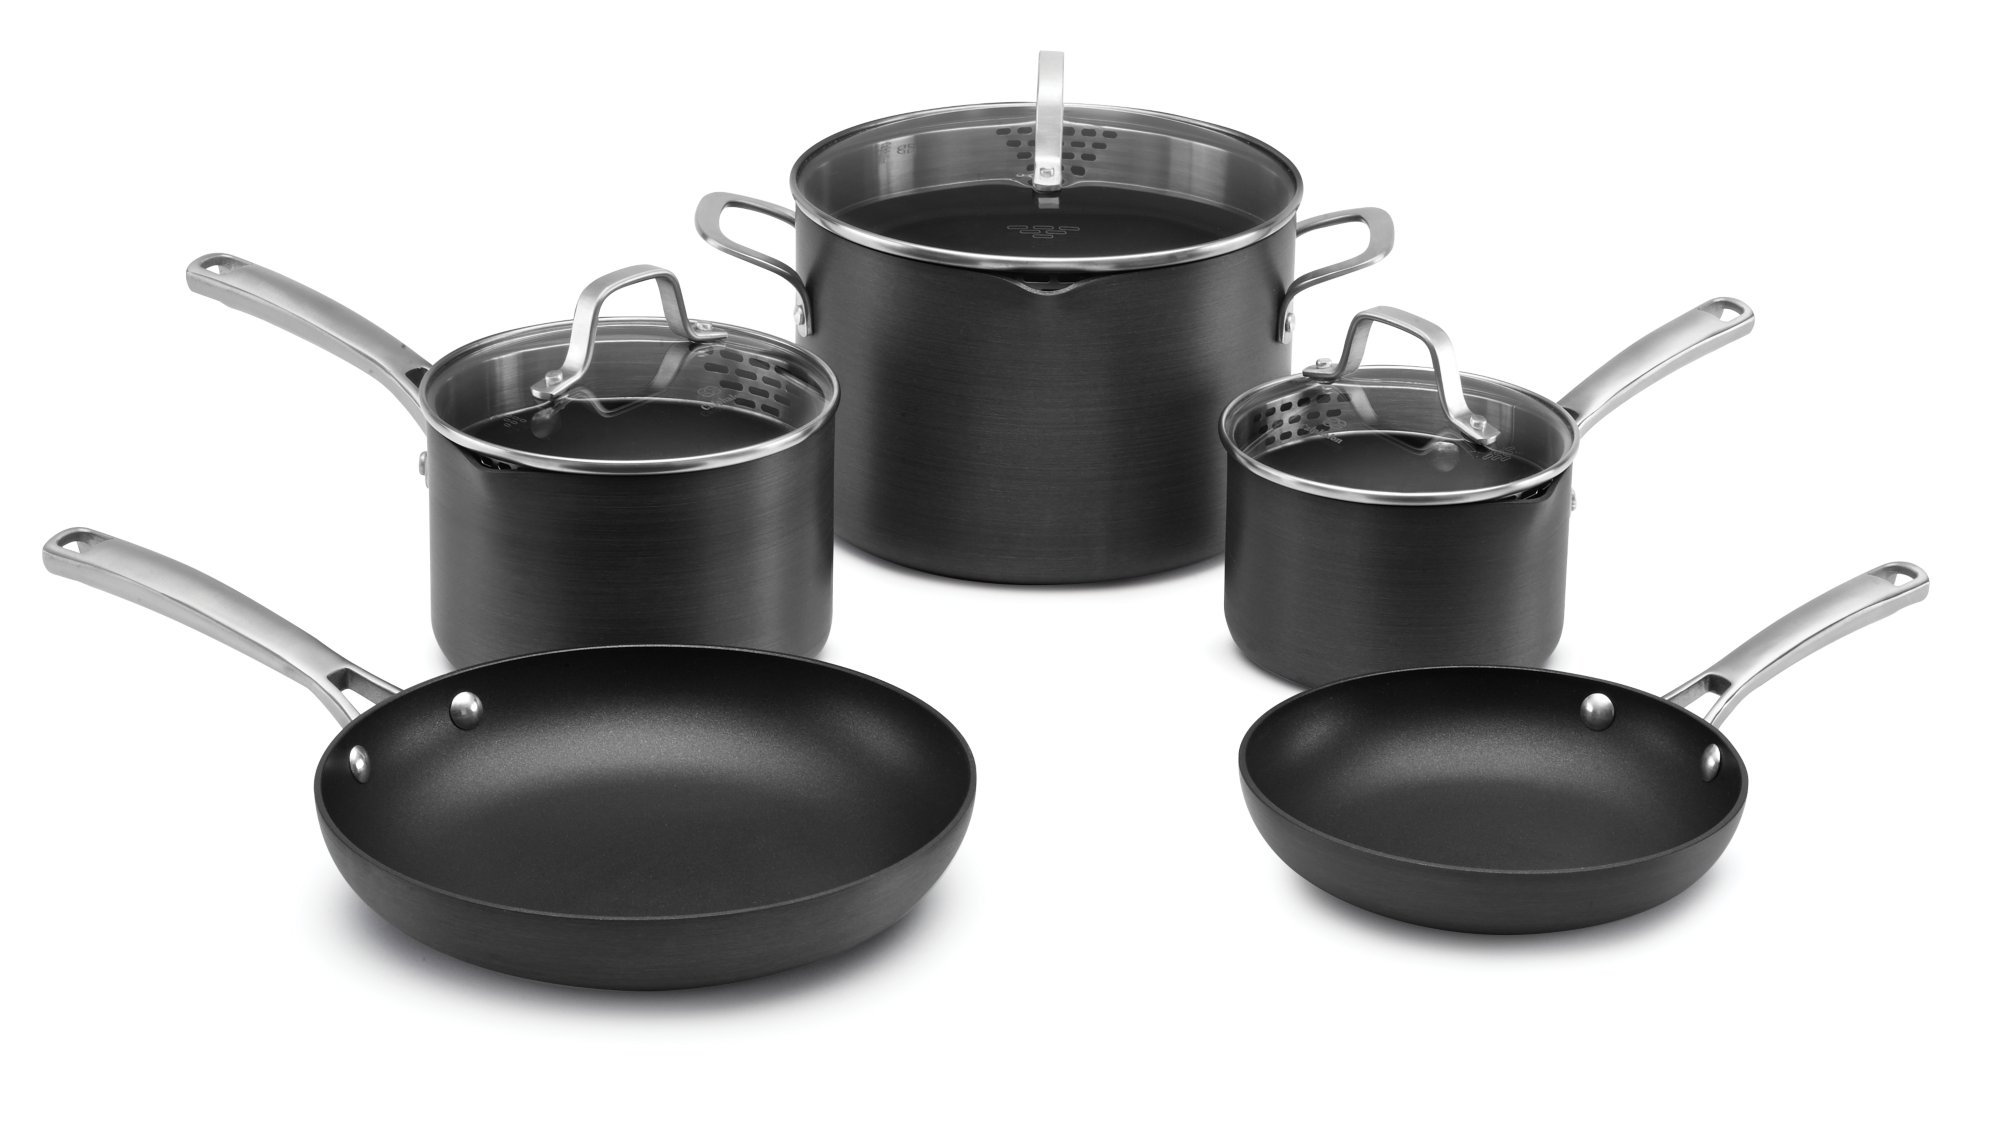 Calphalon Classic™ Nonstick 8-pc. Cookware Set